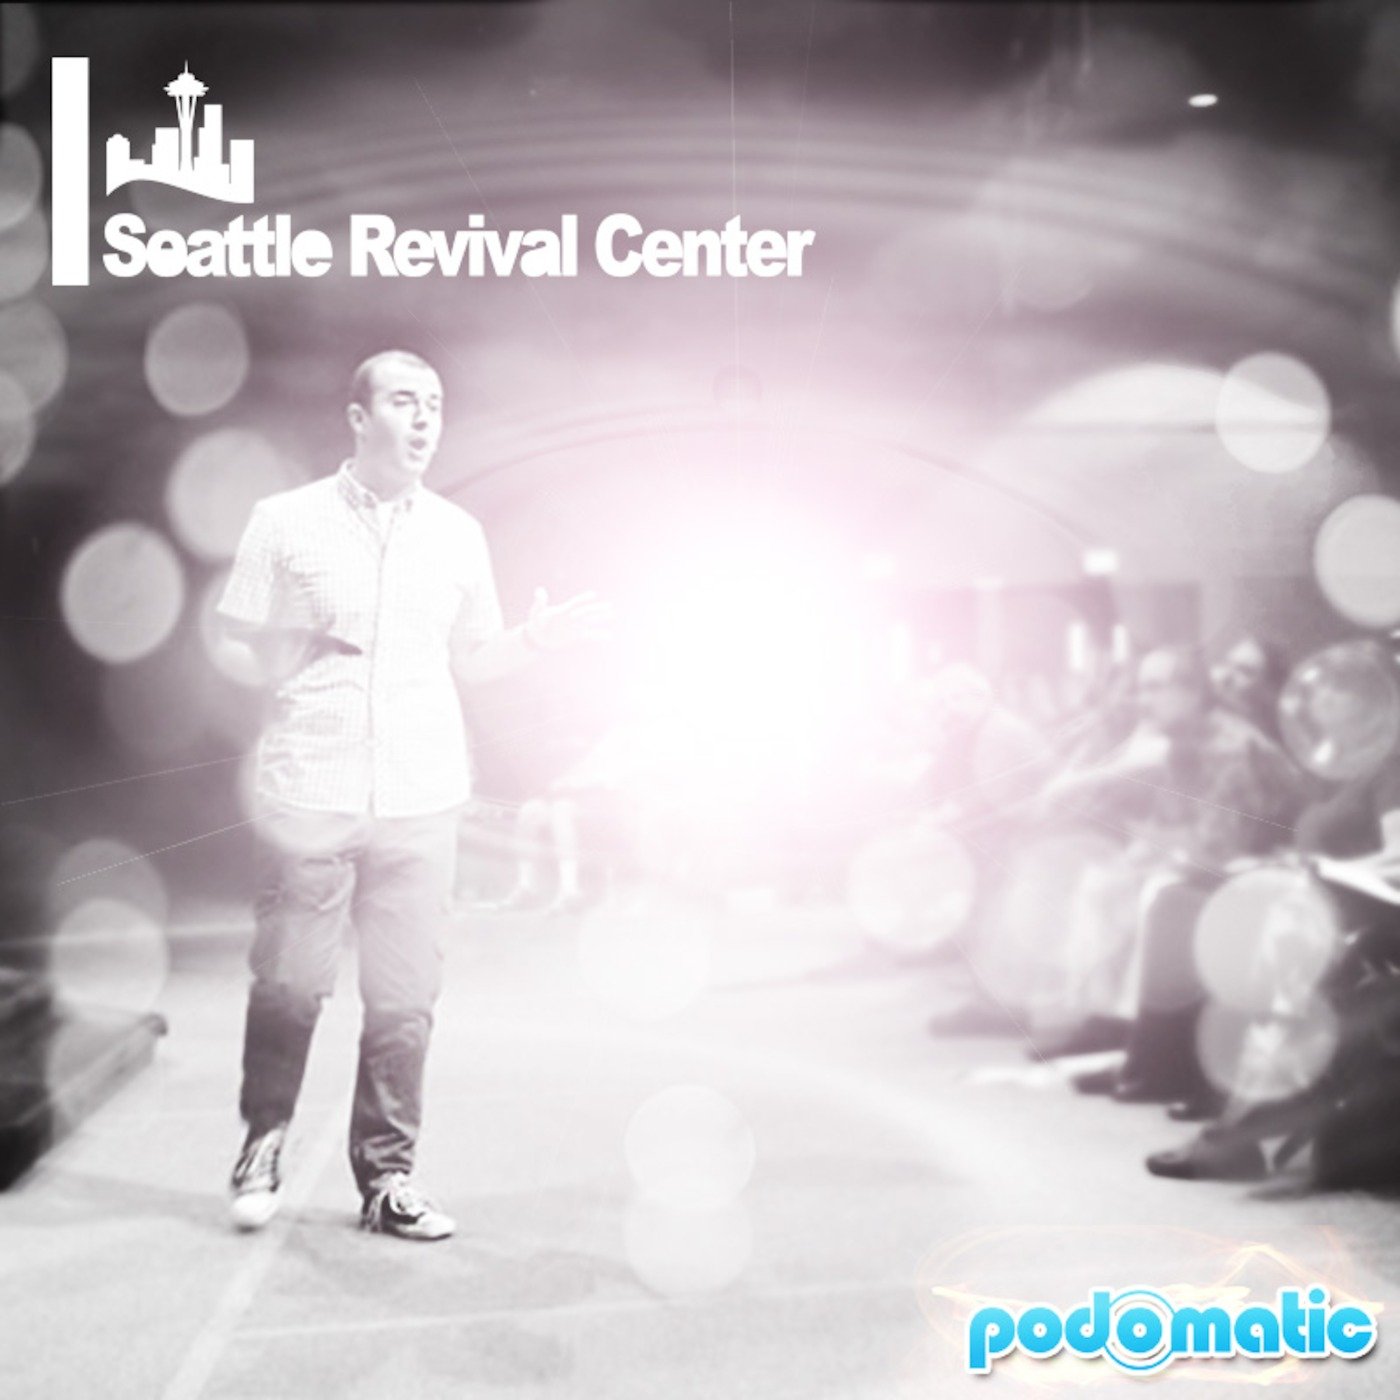 SEATTLE REVIVAL CENTER